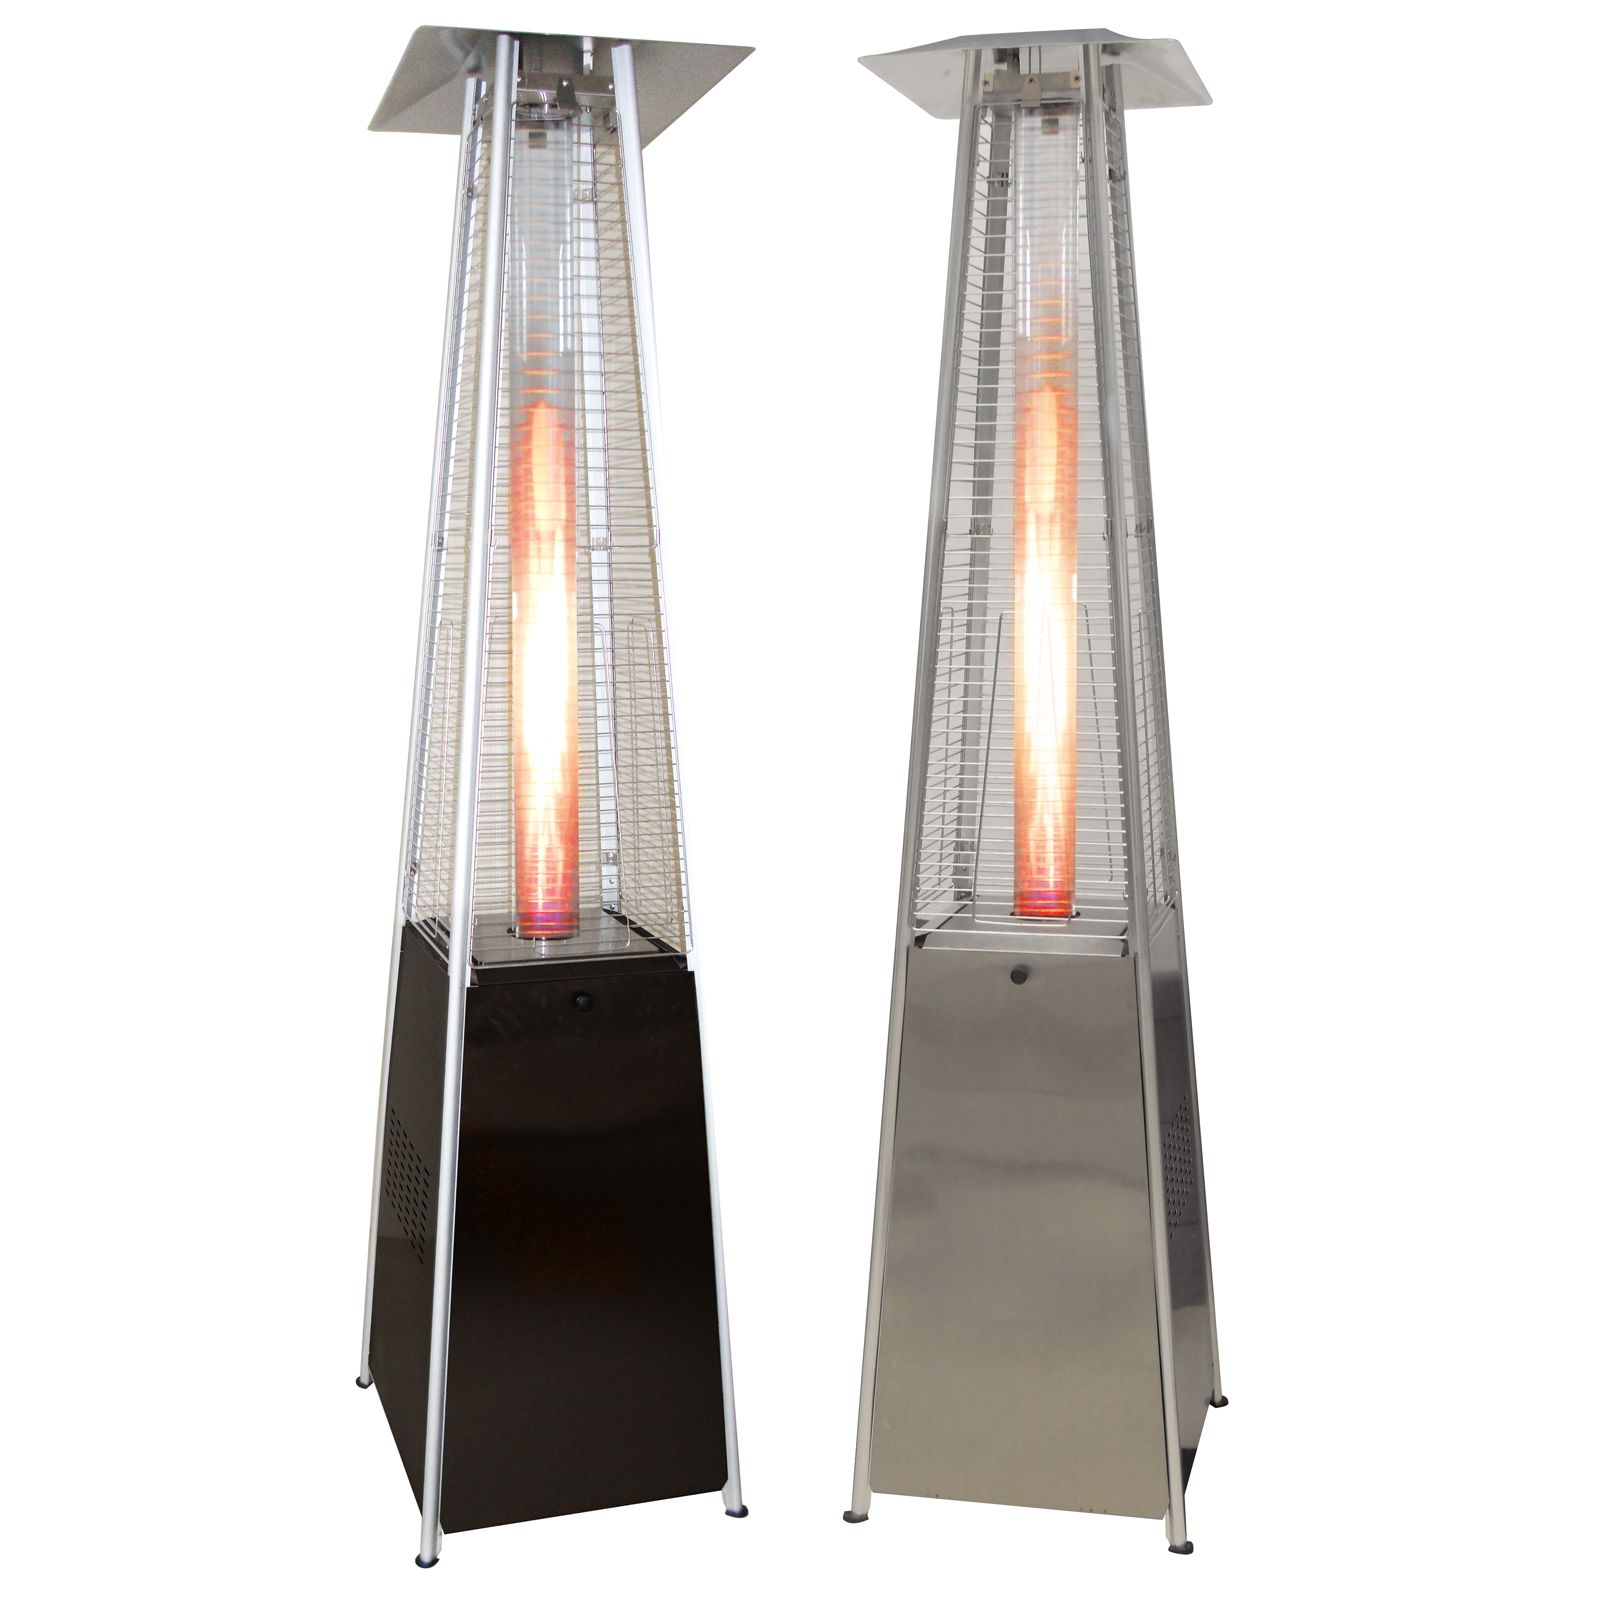 tabletop zm hil az heater electric heaters patio